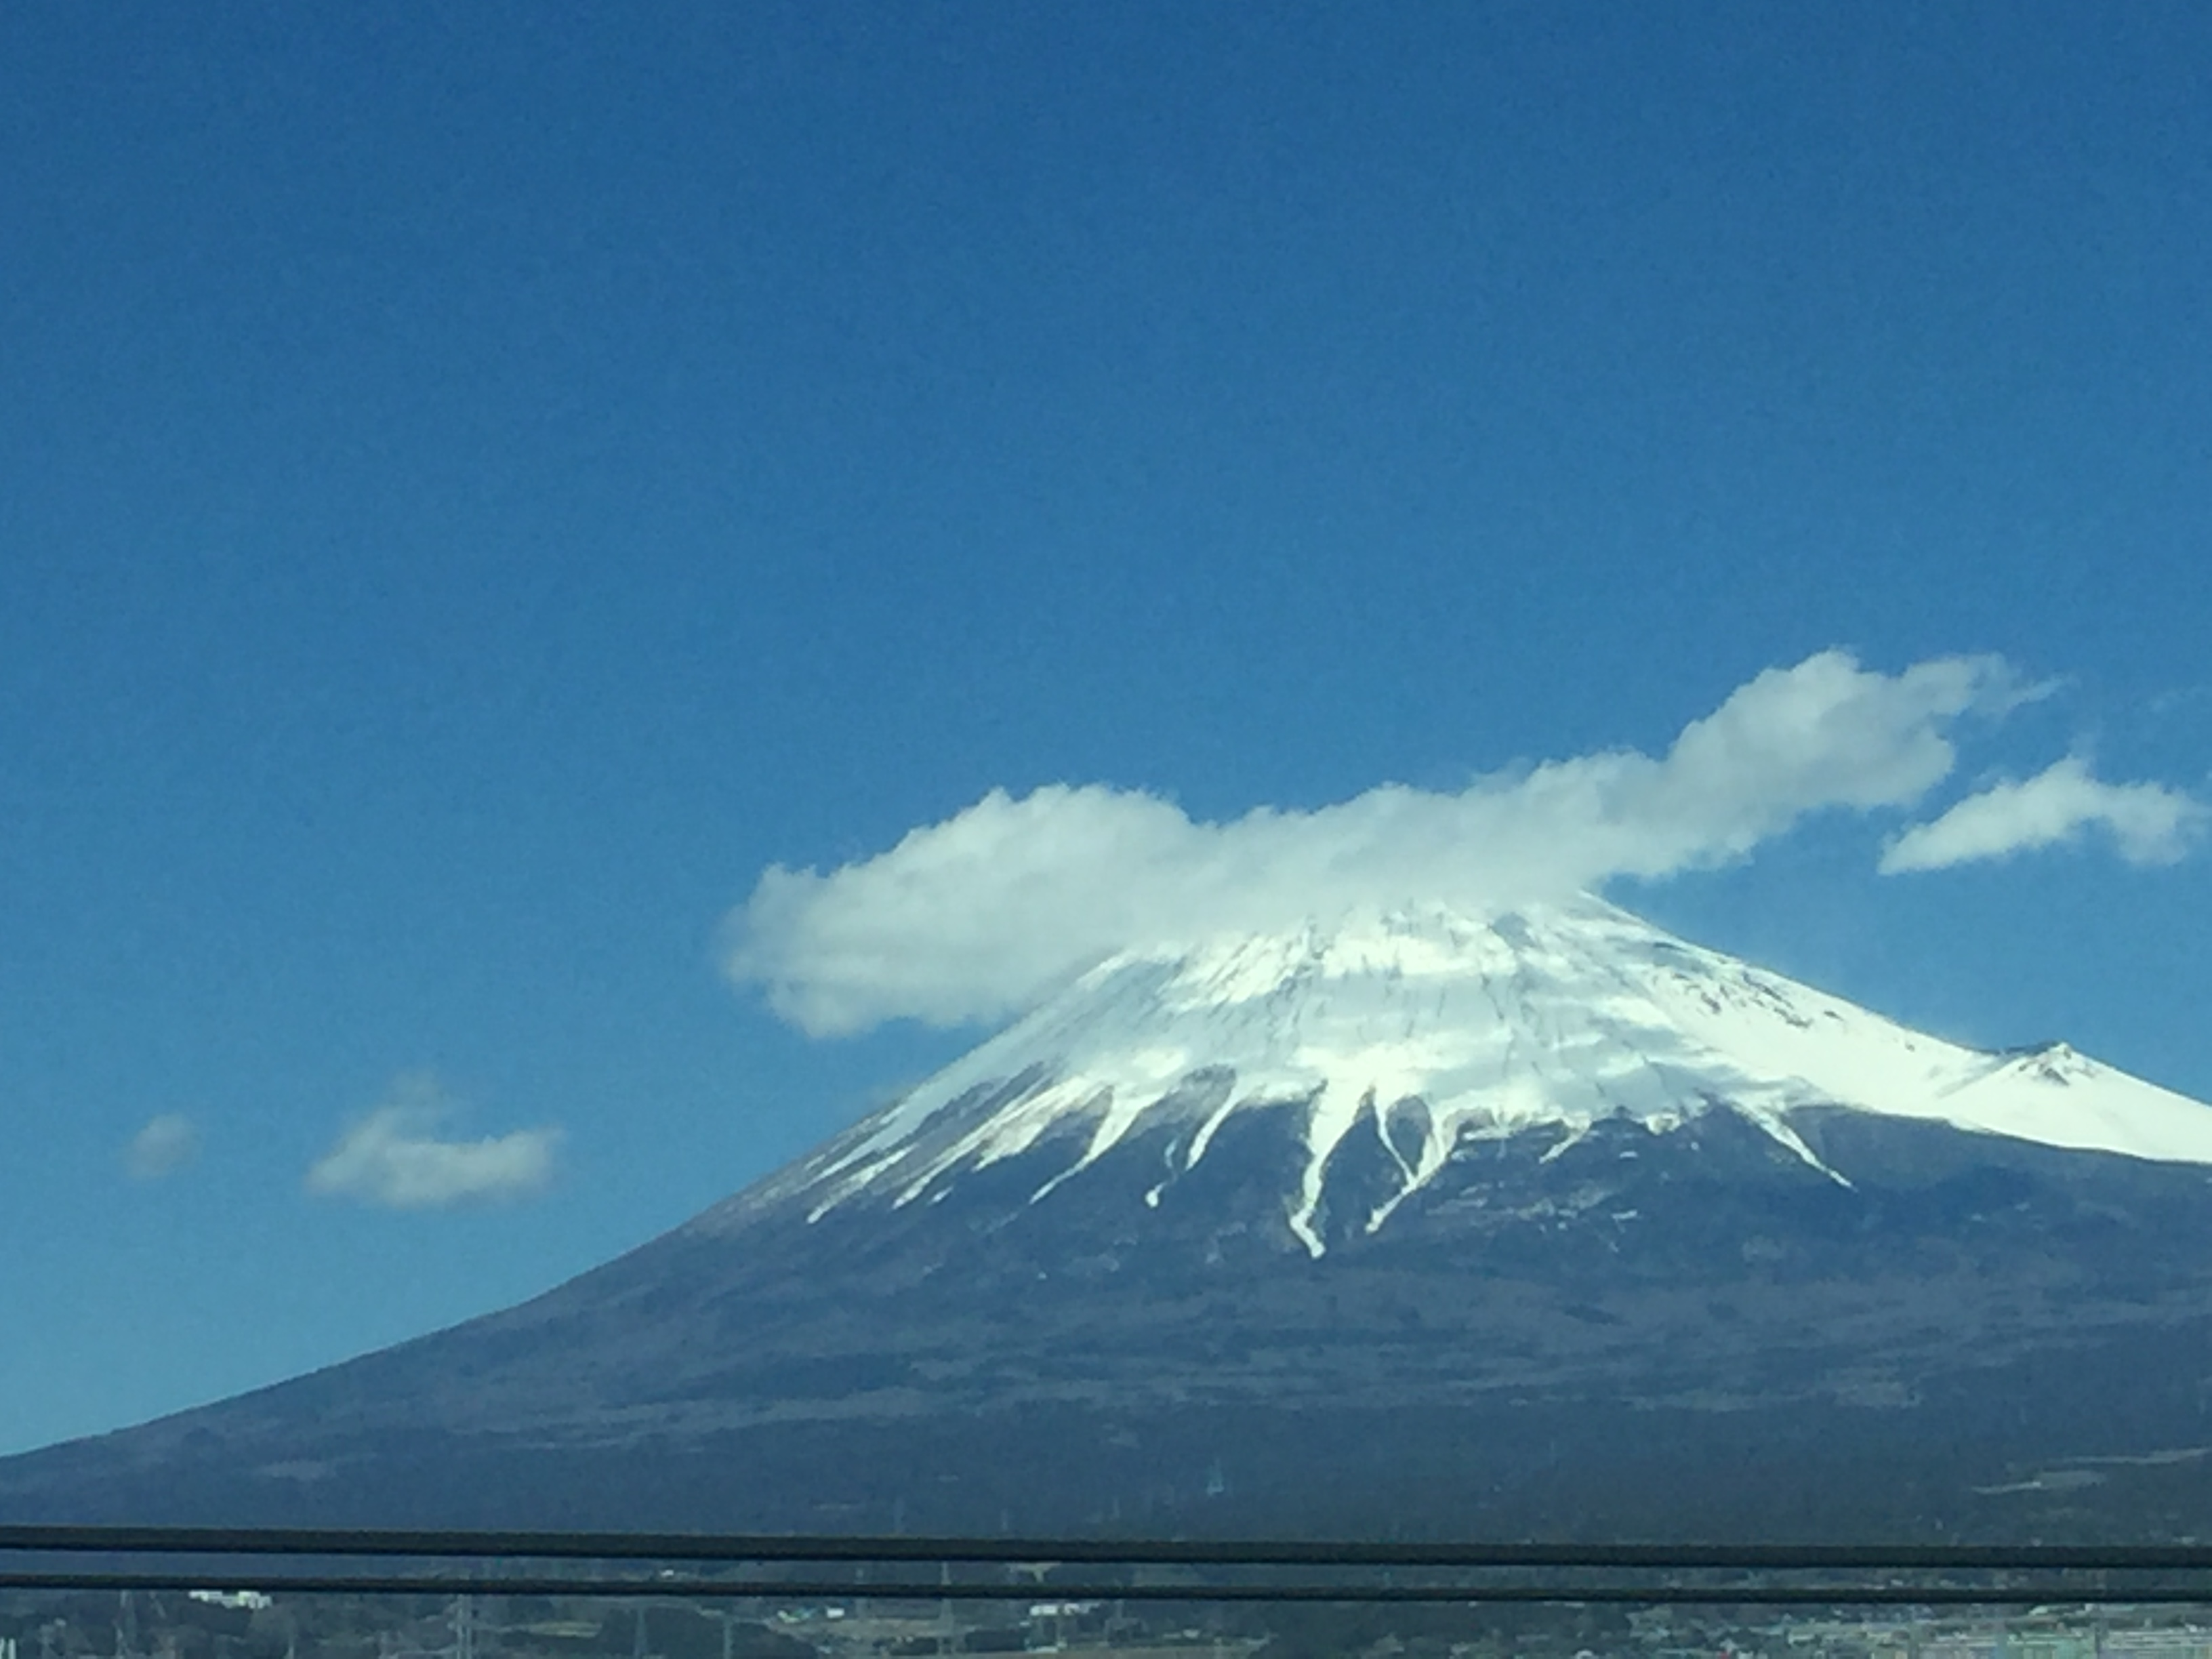 Mt. Fuji. From Travel to Asia: A New Understanding–Villages Found